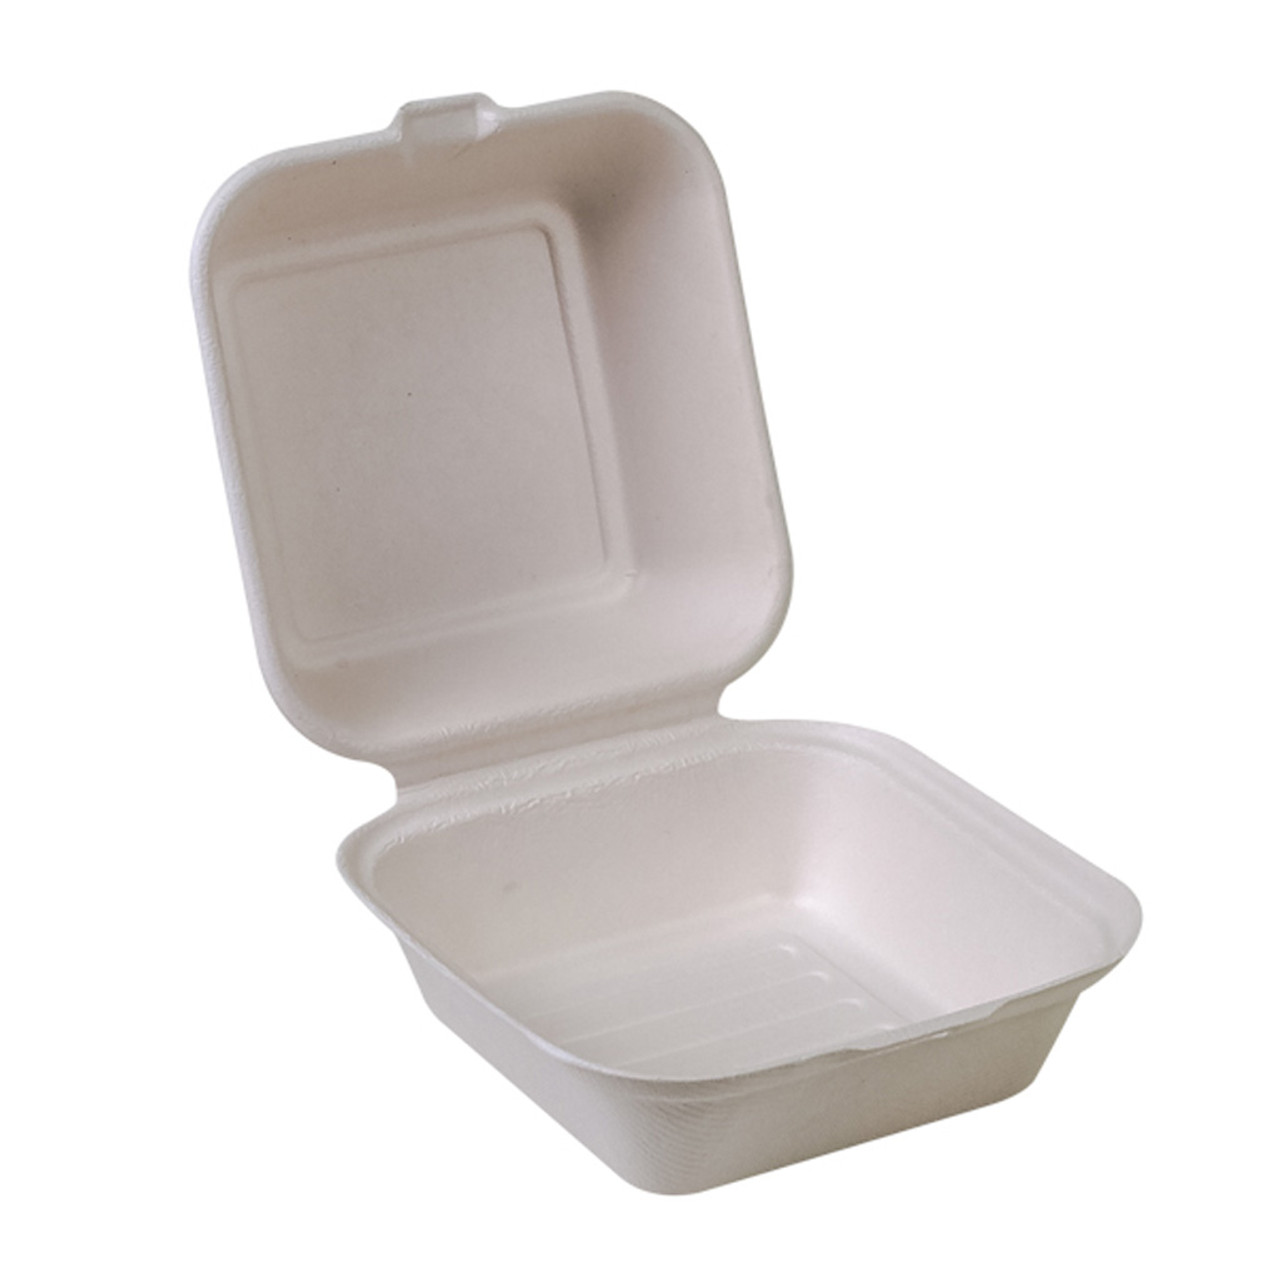 "Compostable Sugarcane Clamshell - 6"" x 6"" - Case of 500"